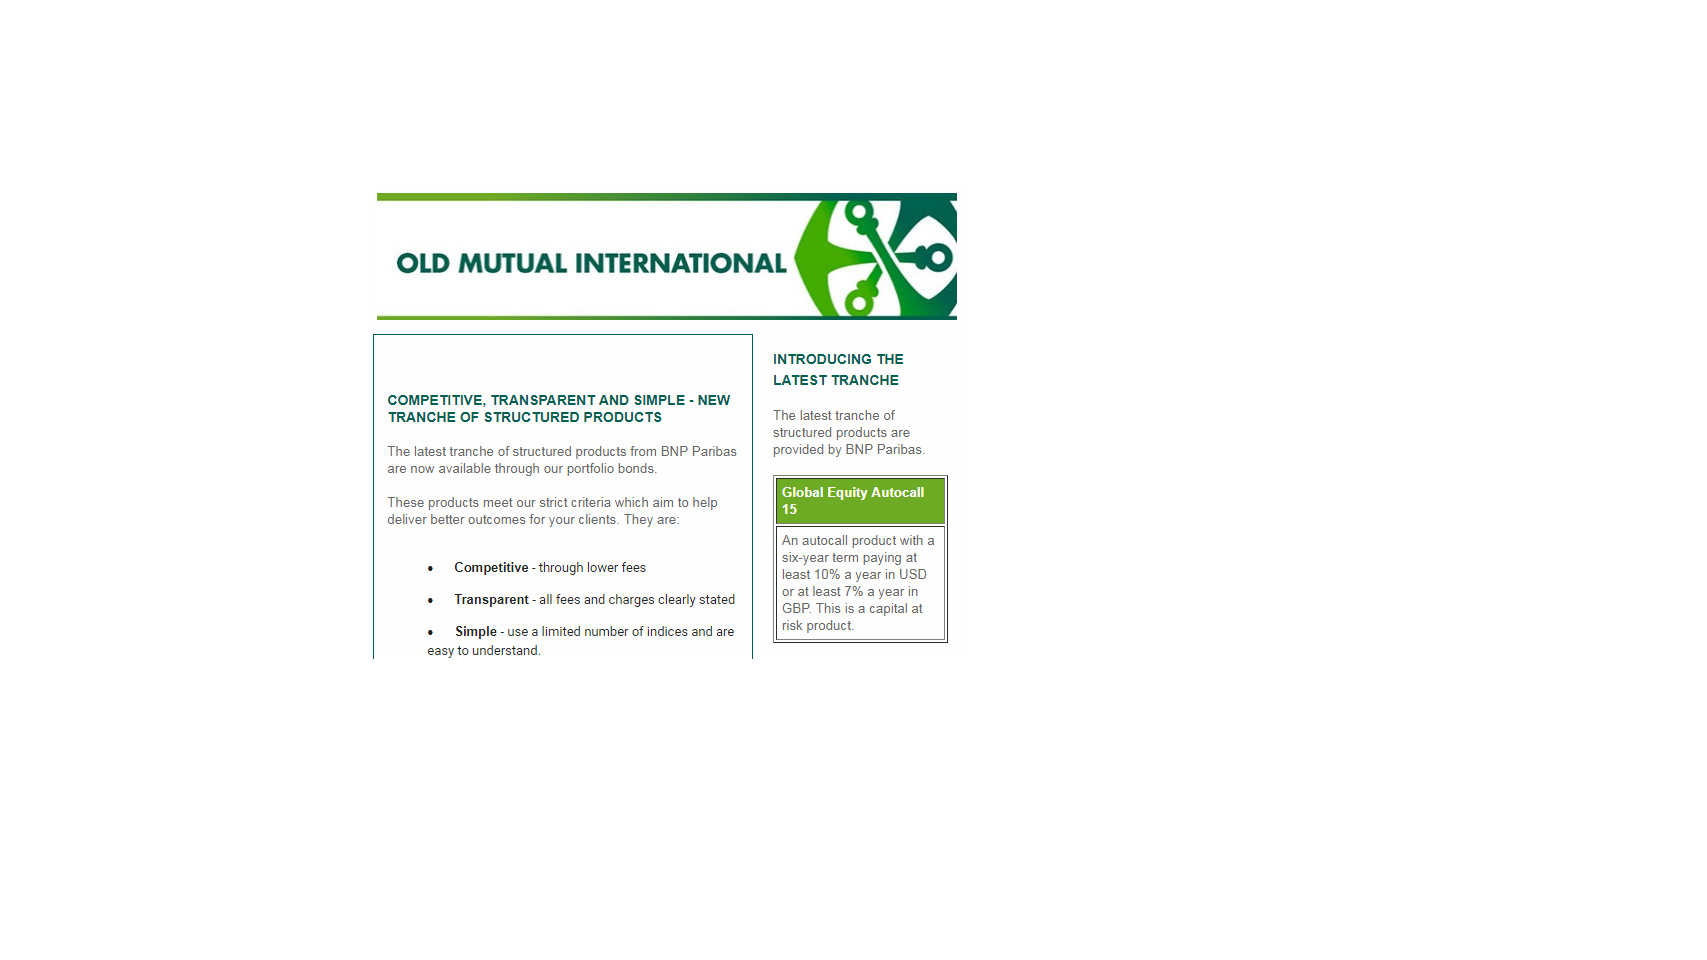 YET ANOTHER STRUCTURED NOTE SCAM BY OLD MUTUAL INTERNATIONAL